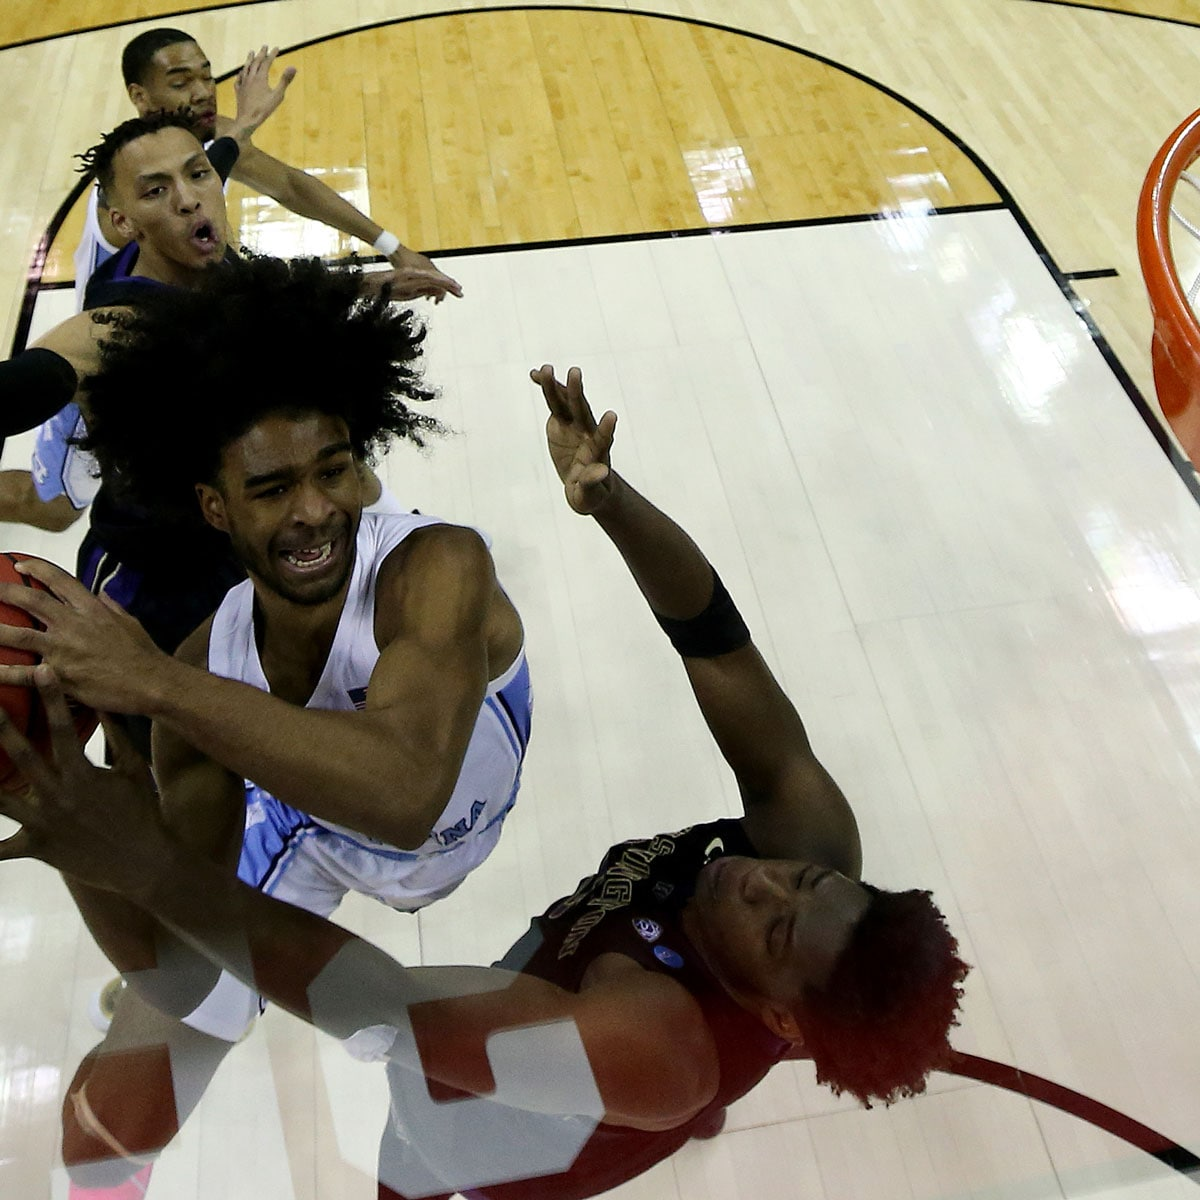 Coby White #2 of the North Carolina Tar Heels goes up for a shot against the Washington Huskies during their game in the Second Round of the NCAA Basketball Tournament at Nationwide Arena on March 24, 2019 in Columbus, Ohio.